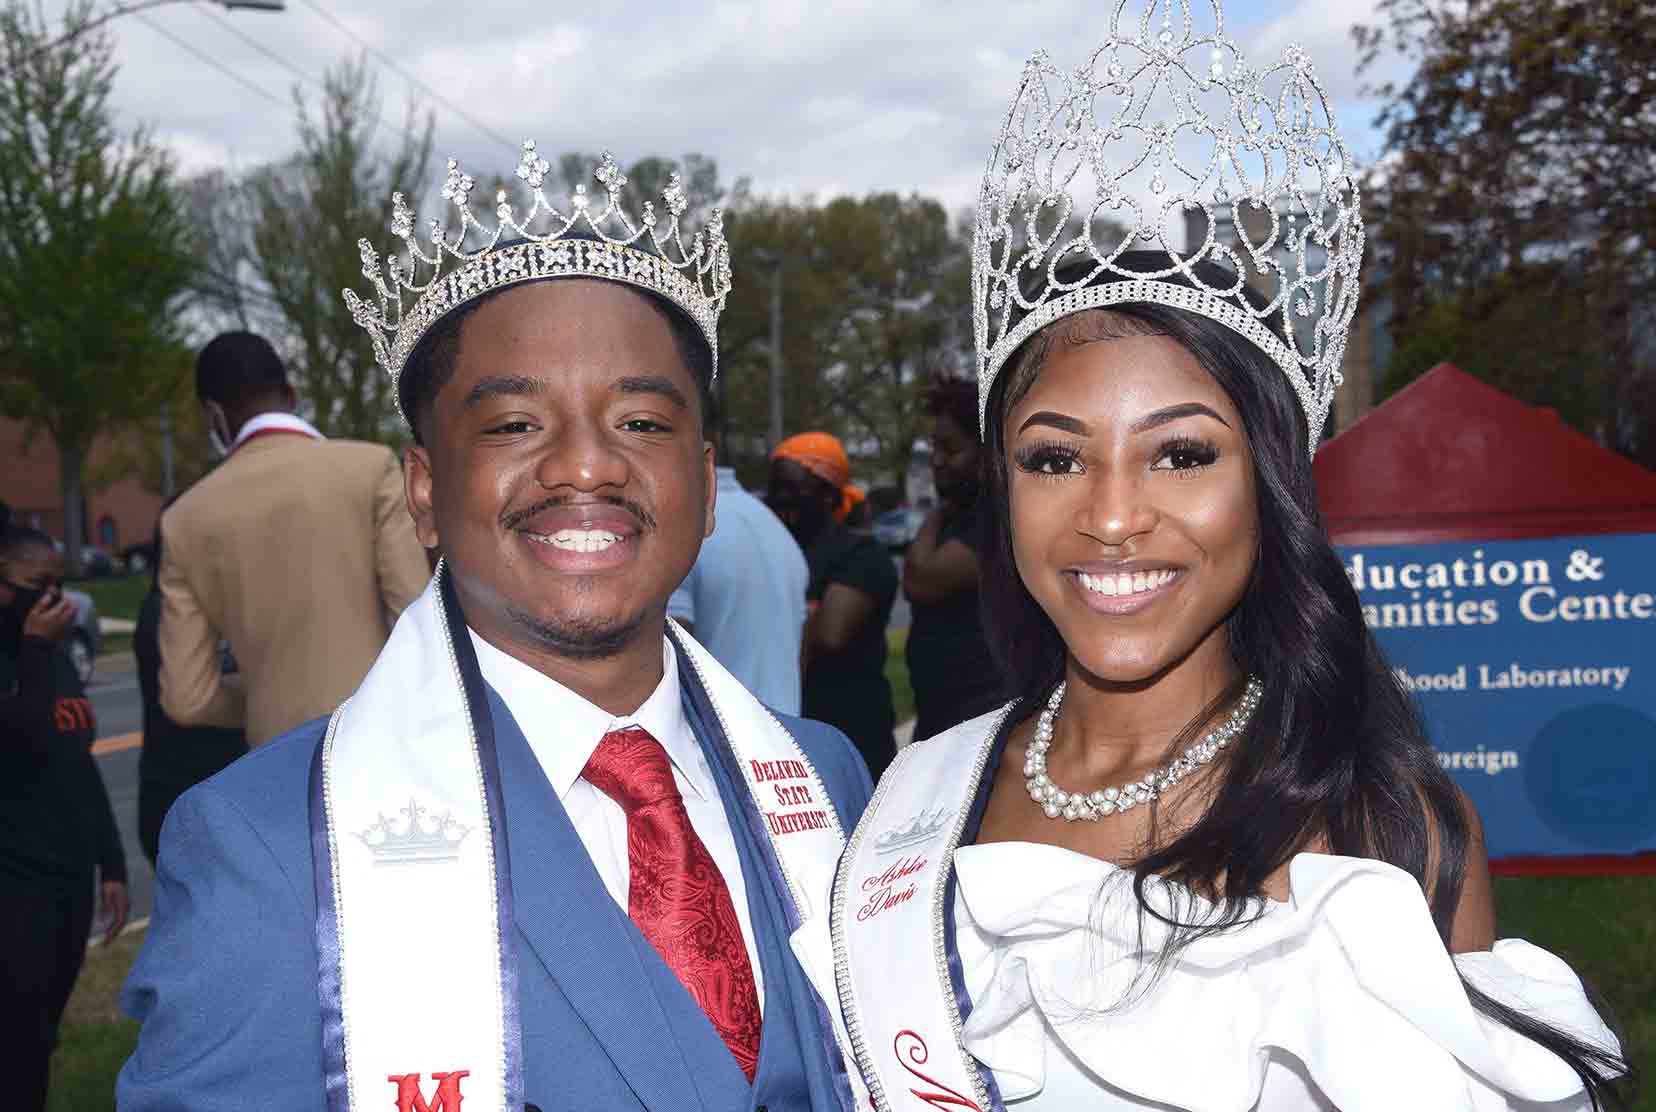 Christian J. Chapman and Ashlee M. Davis, 2020-2021 Mr. and Miss DSU, along with the rest of the Class of 2021 (as well as those who completed their degree in the summer and winter of 2020) are thrilled that their graduation is being celebrated with a series of in-person Commencement ceremonies. The University will also hold a Ceremony for Spring 2020 graduates who want to return to walk across the stage.